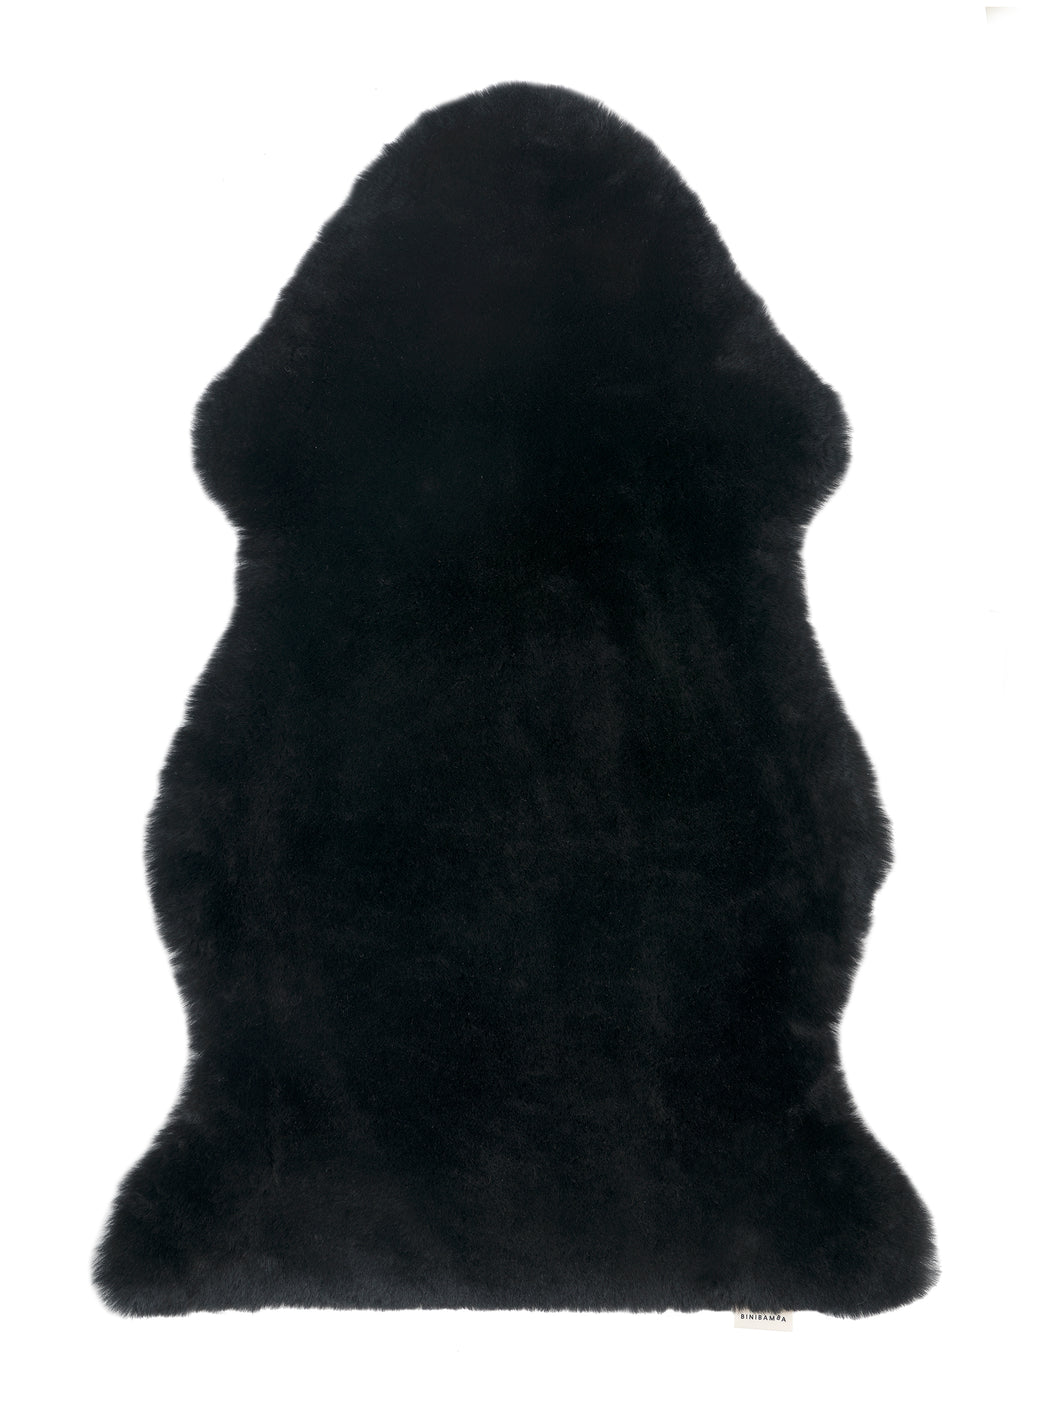 Binibamba black sheepskin wriggle mat rug for babies to use as a natural playmat